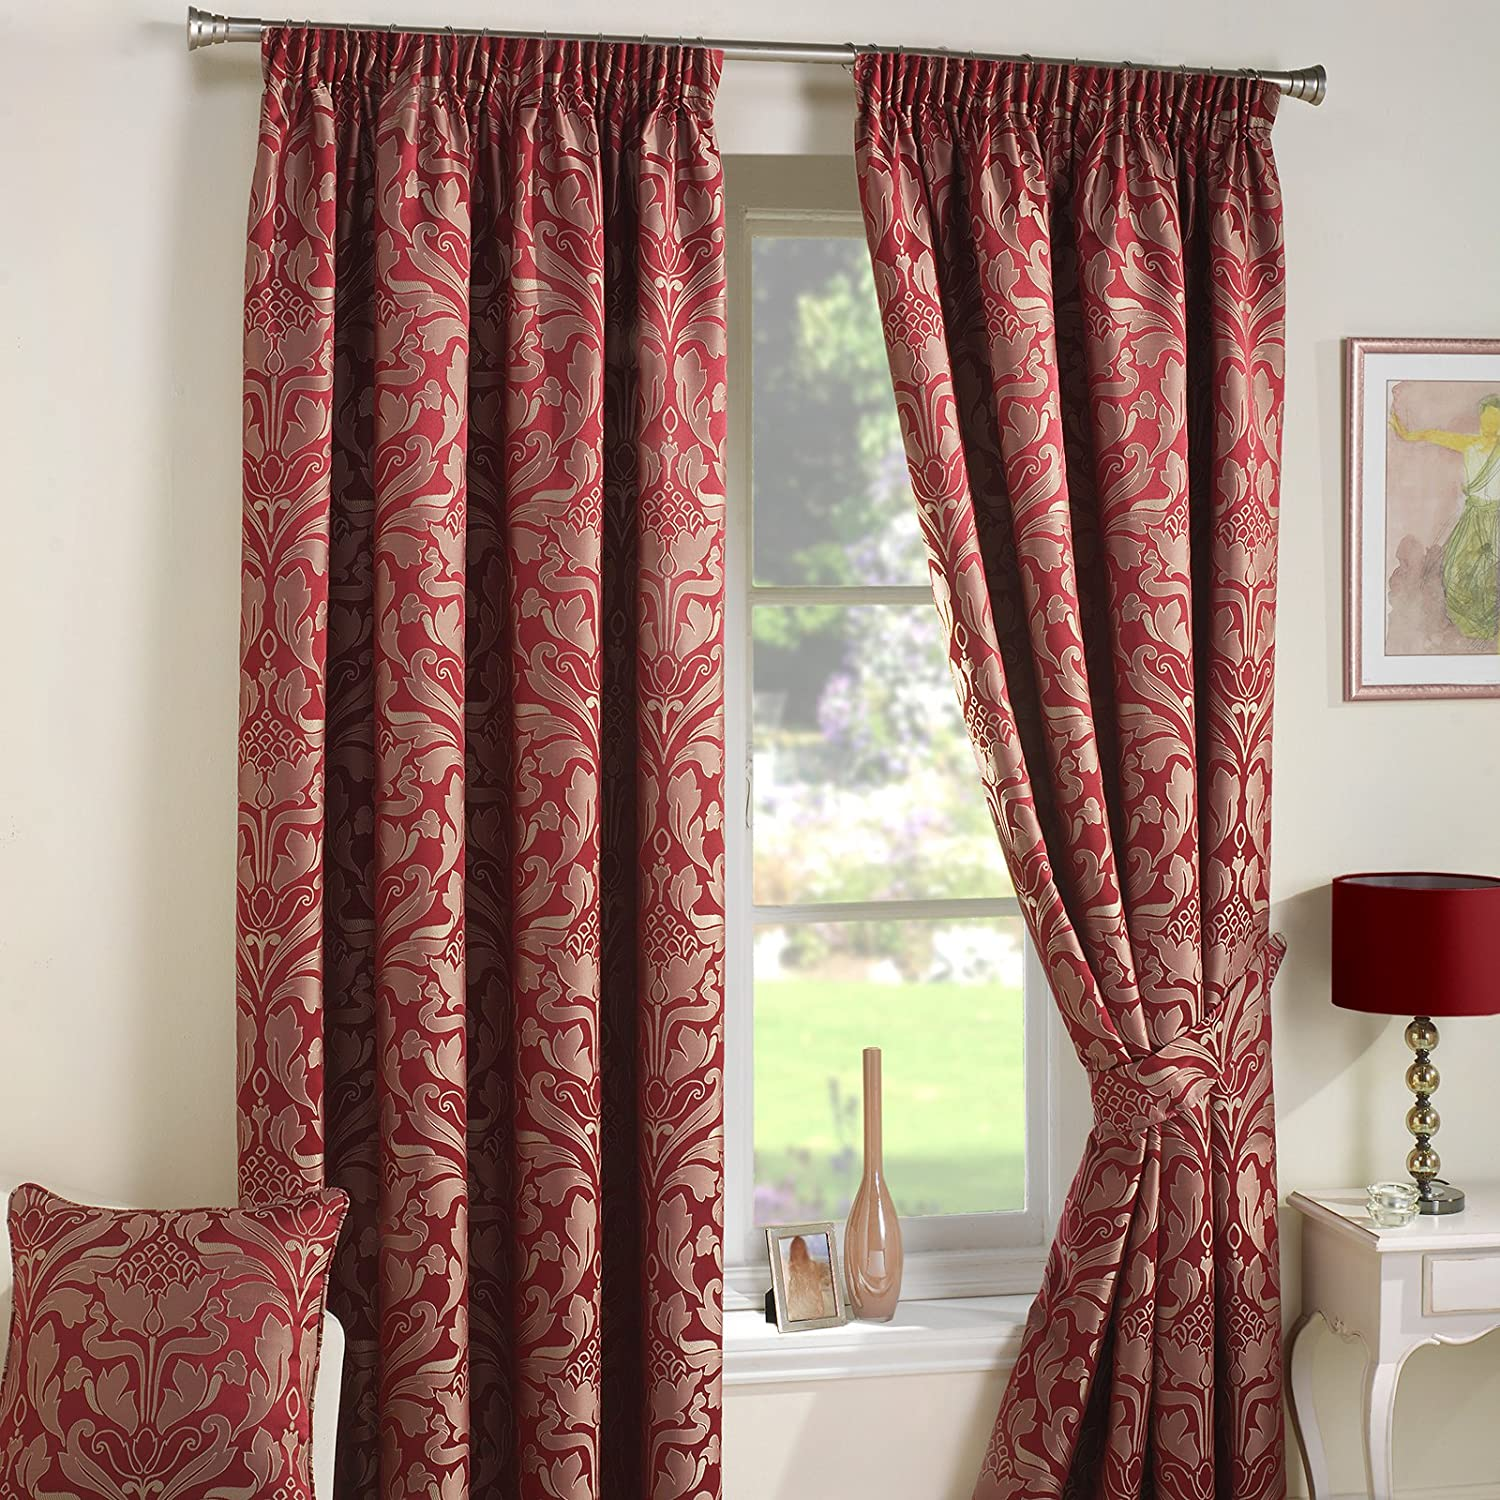 Just Contempo Luxury Curtain 9924, Cortinas (damasco, con ojales), Rojo, 66.04 cm (Pair of Curtain Tie Backs): Amazon.es: Hogar